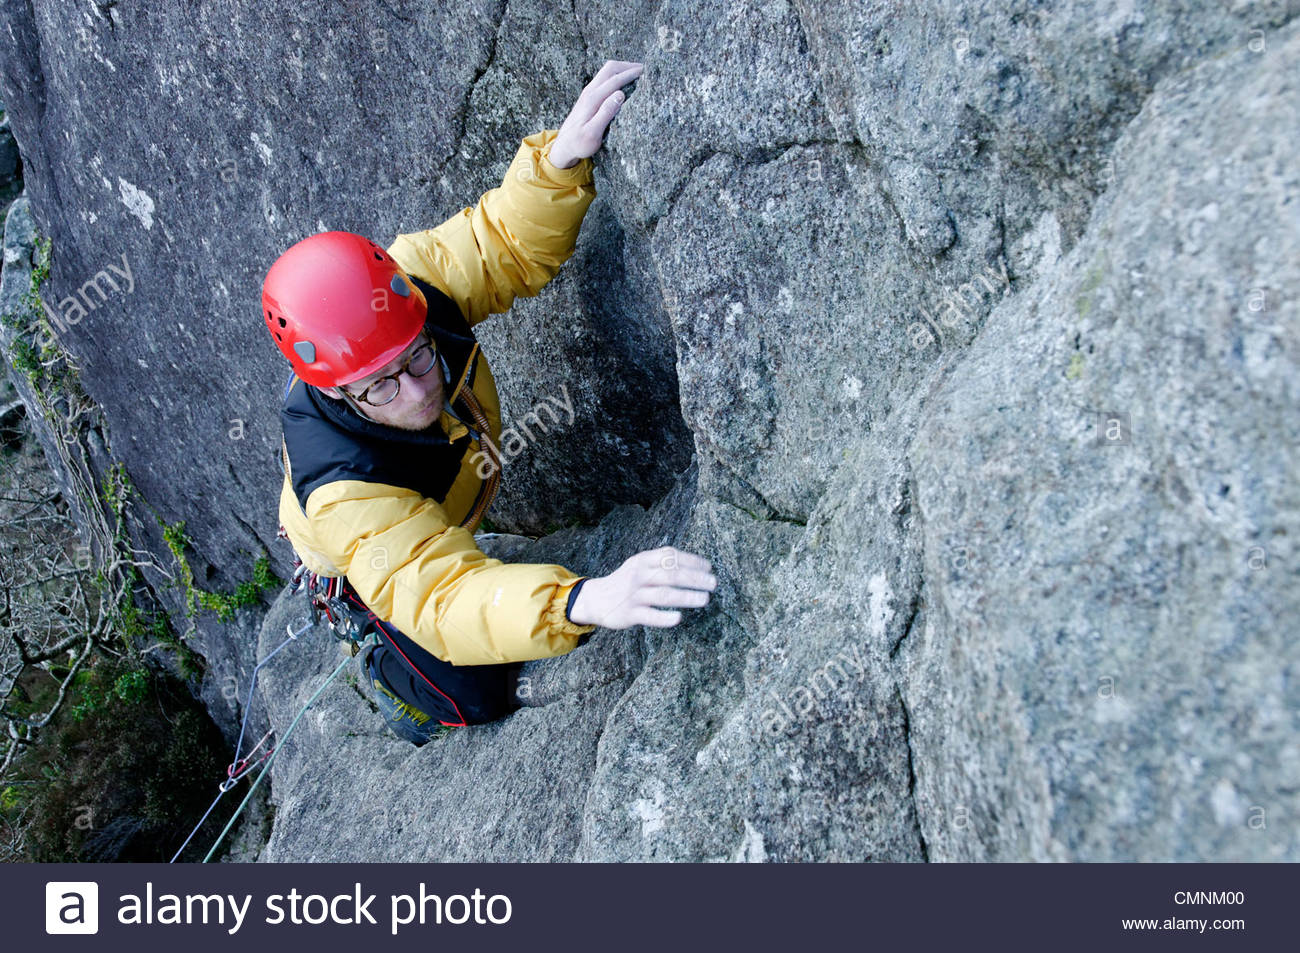 Tremadog North Wales, A rock climber leading a climb at Tremadog North Wales Stock Photo ...